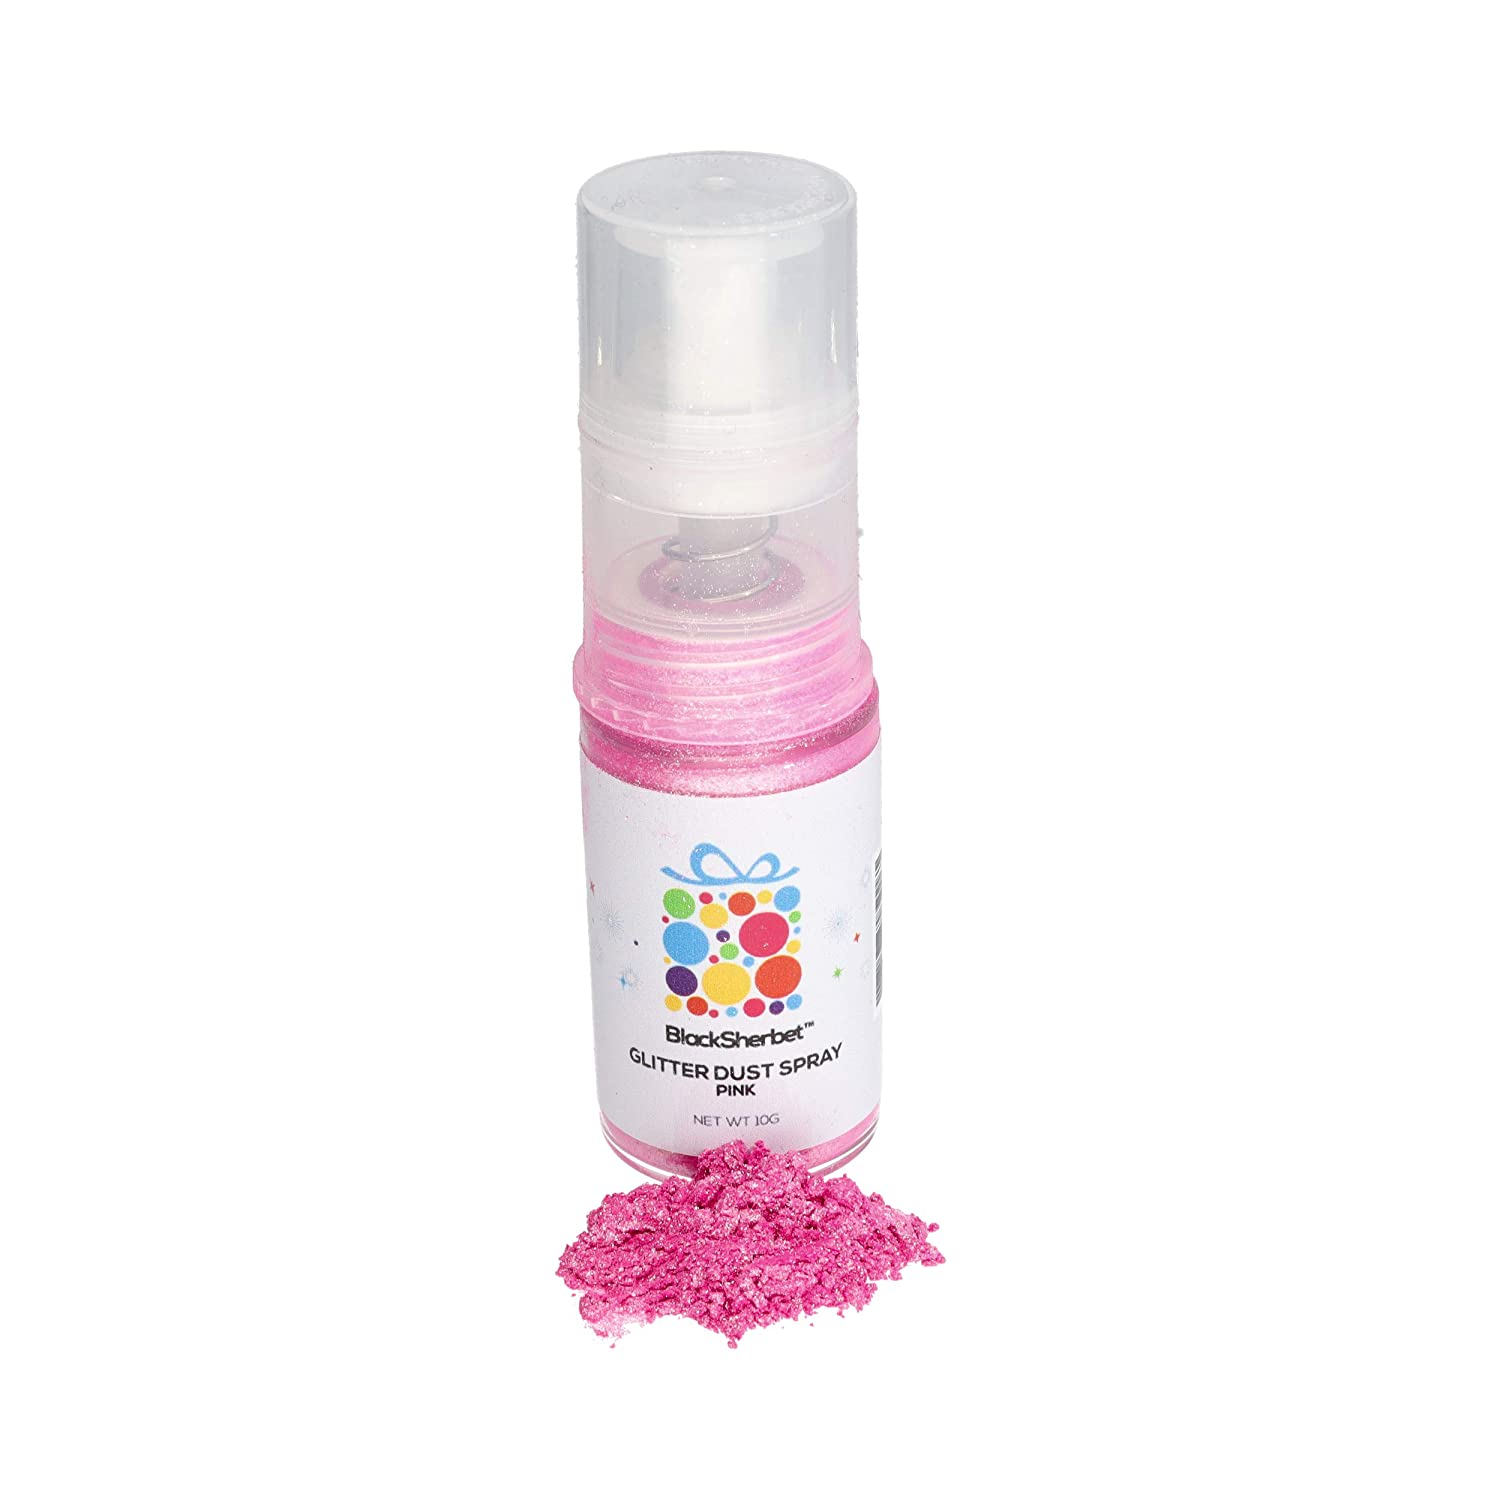 Edible Glitter Dust Spray, (10g) | 100% Edible | Food Grade | Cakes, Cupcakes, Decorating, Cake Pops, Cookies, Drinks, Gourmet Desserts, Chocolate. (Pink)